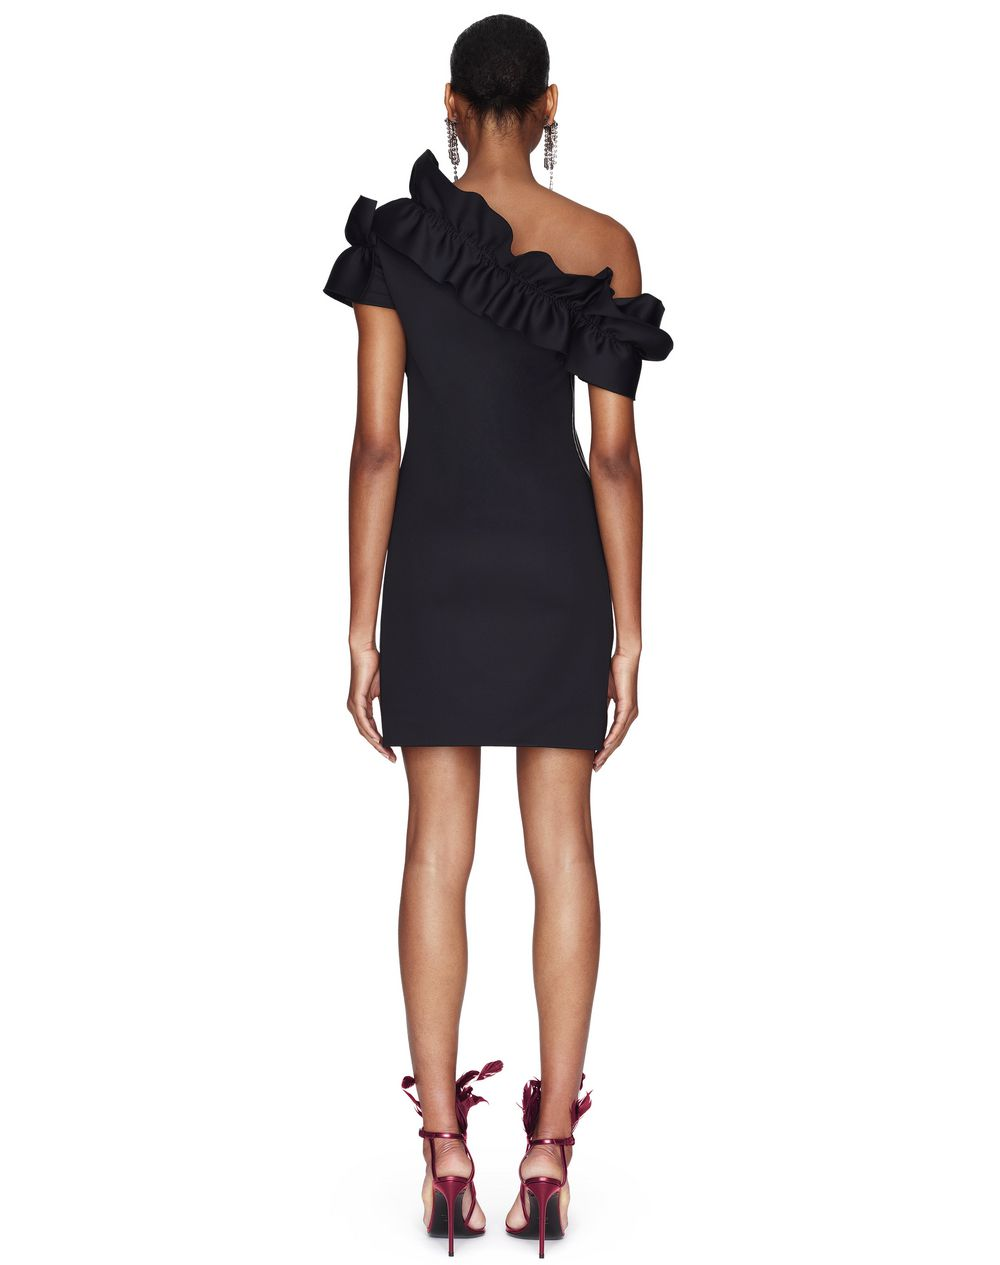 ASYMMETRICAL DRESS - Lanvin